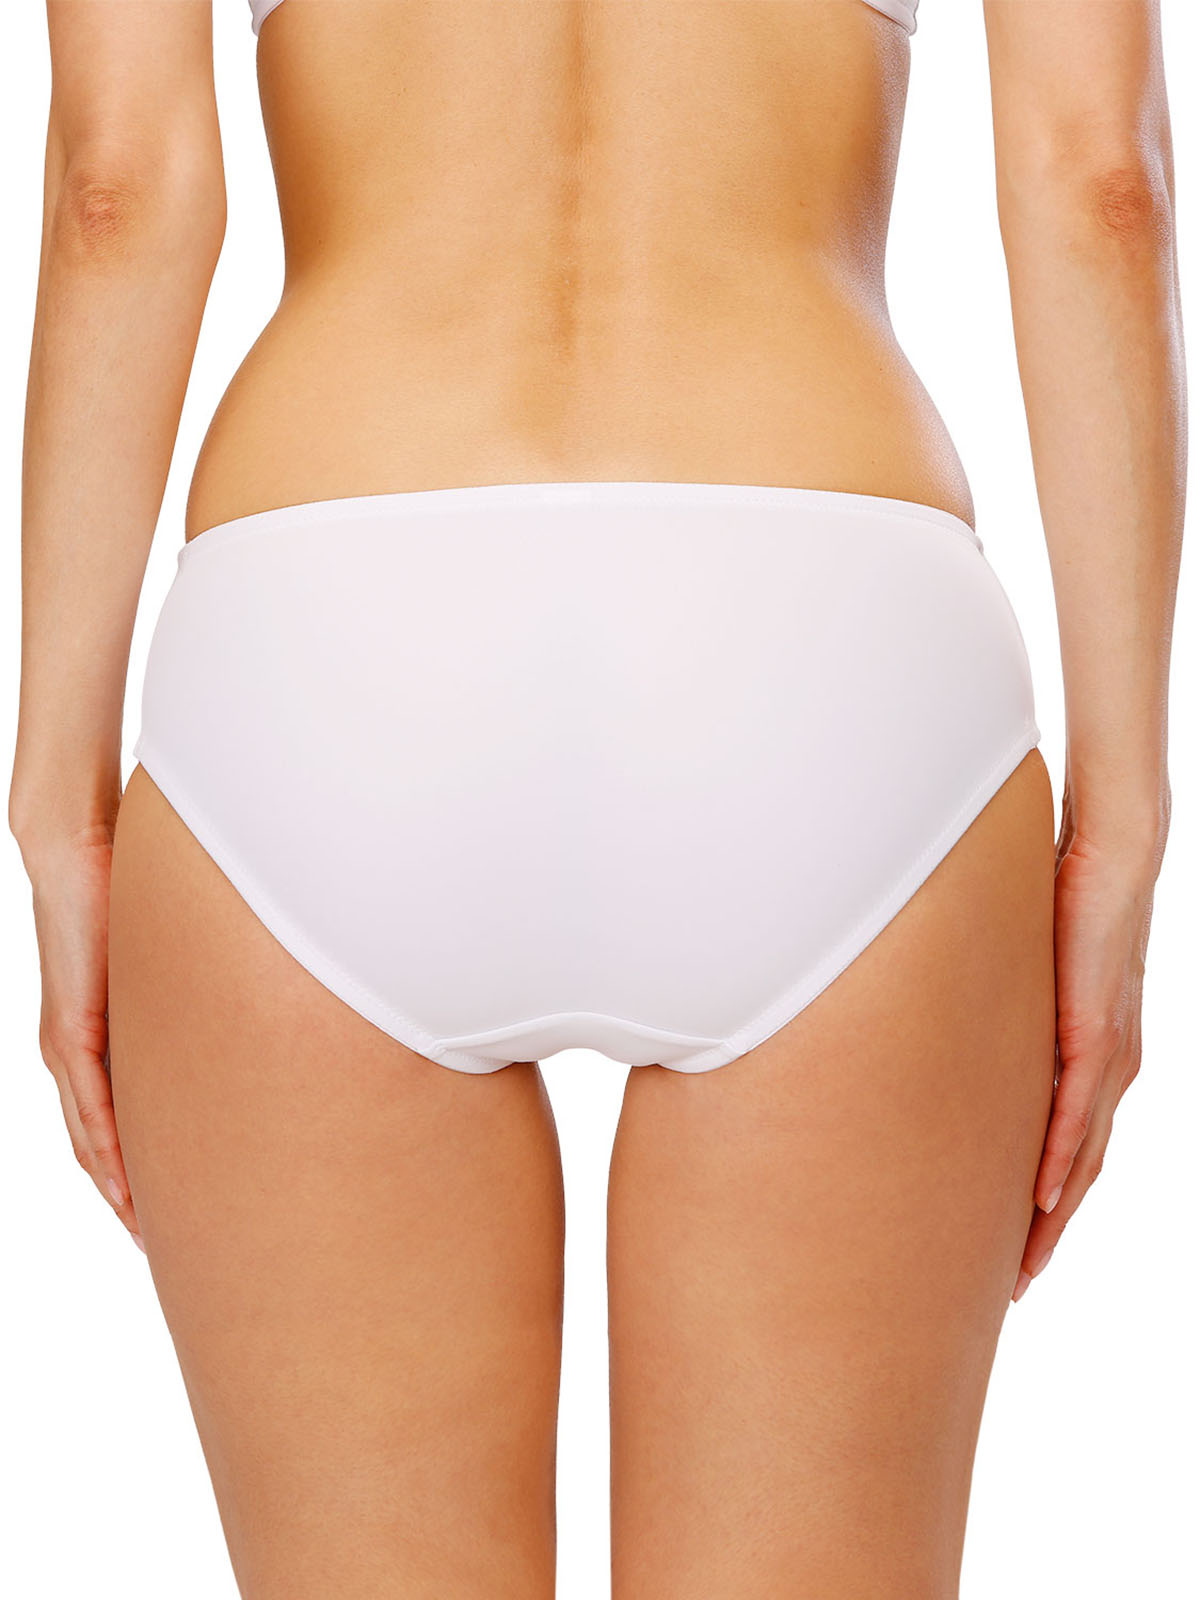 Naturana Women's Briefs 4058